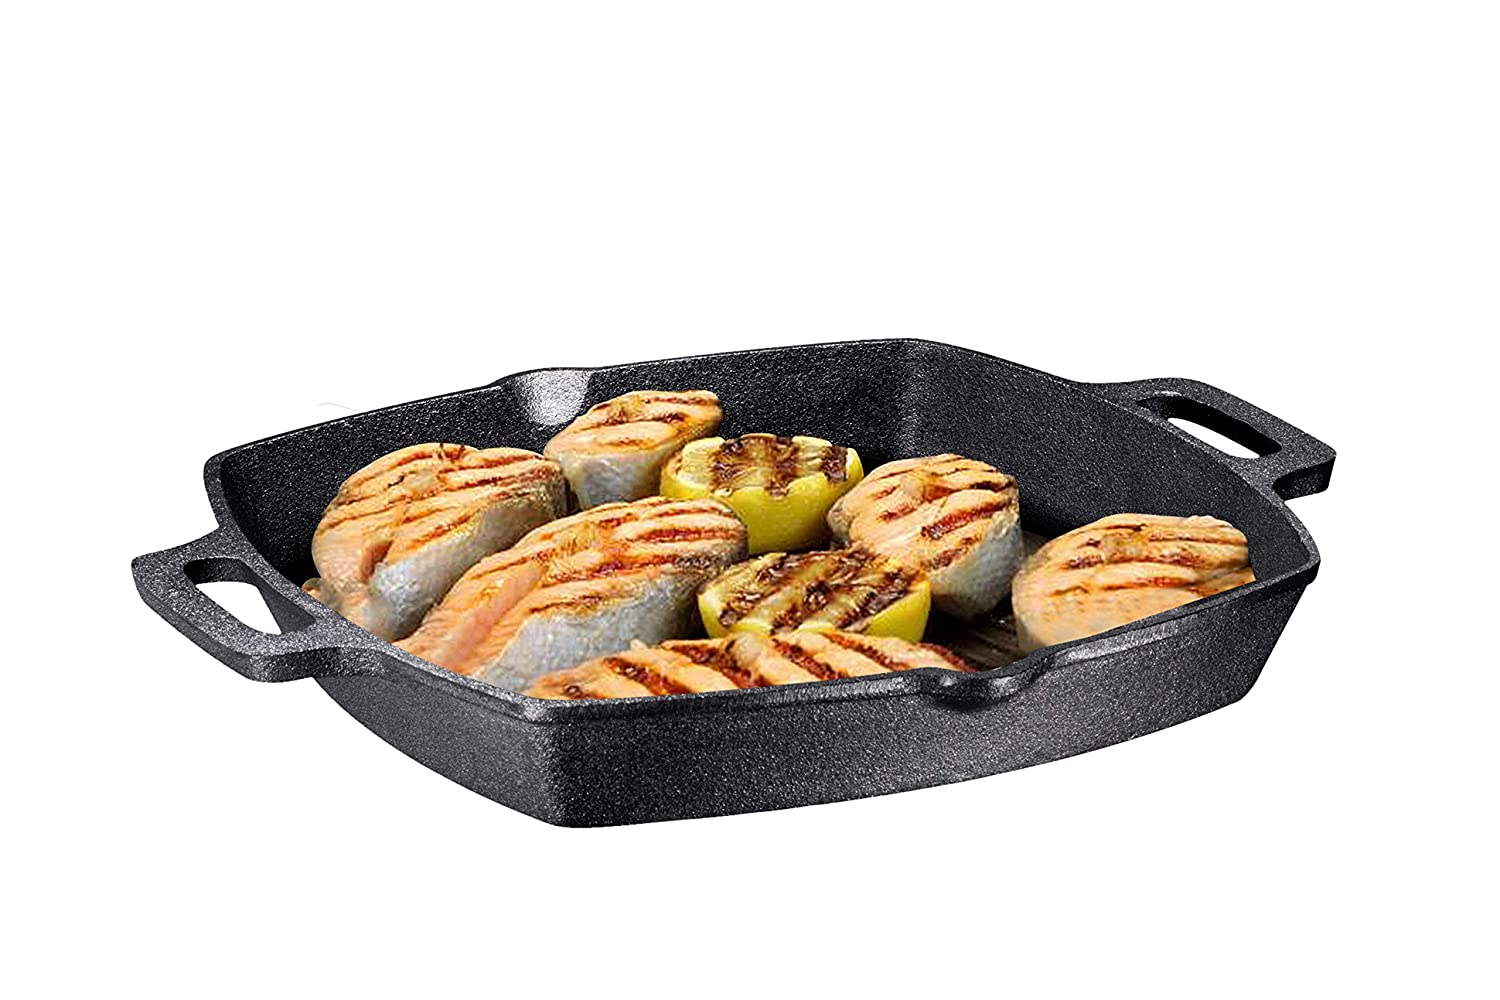 13 Inch Square Cast Iron Grill Pan. Pre-seasoned Grill Pan with Easy Grease Drain Spout, with Large Loop Handles